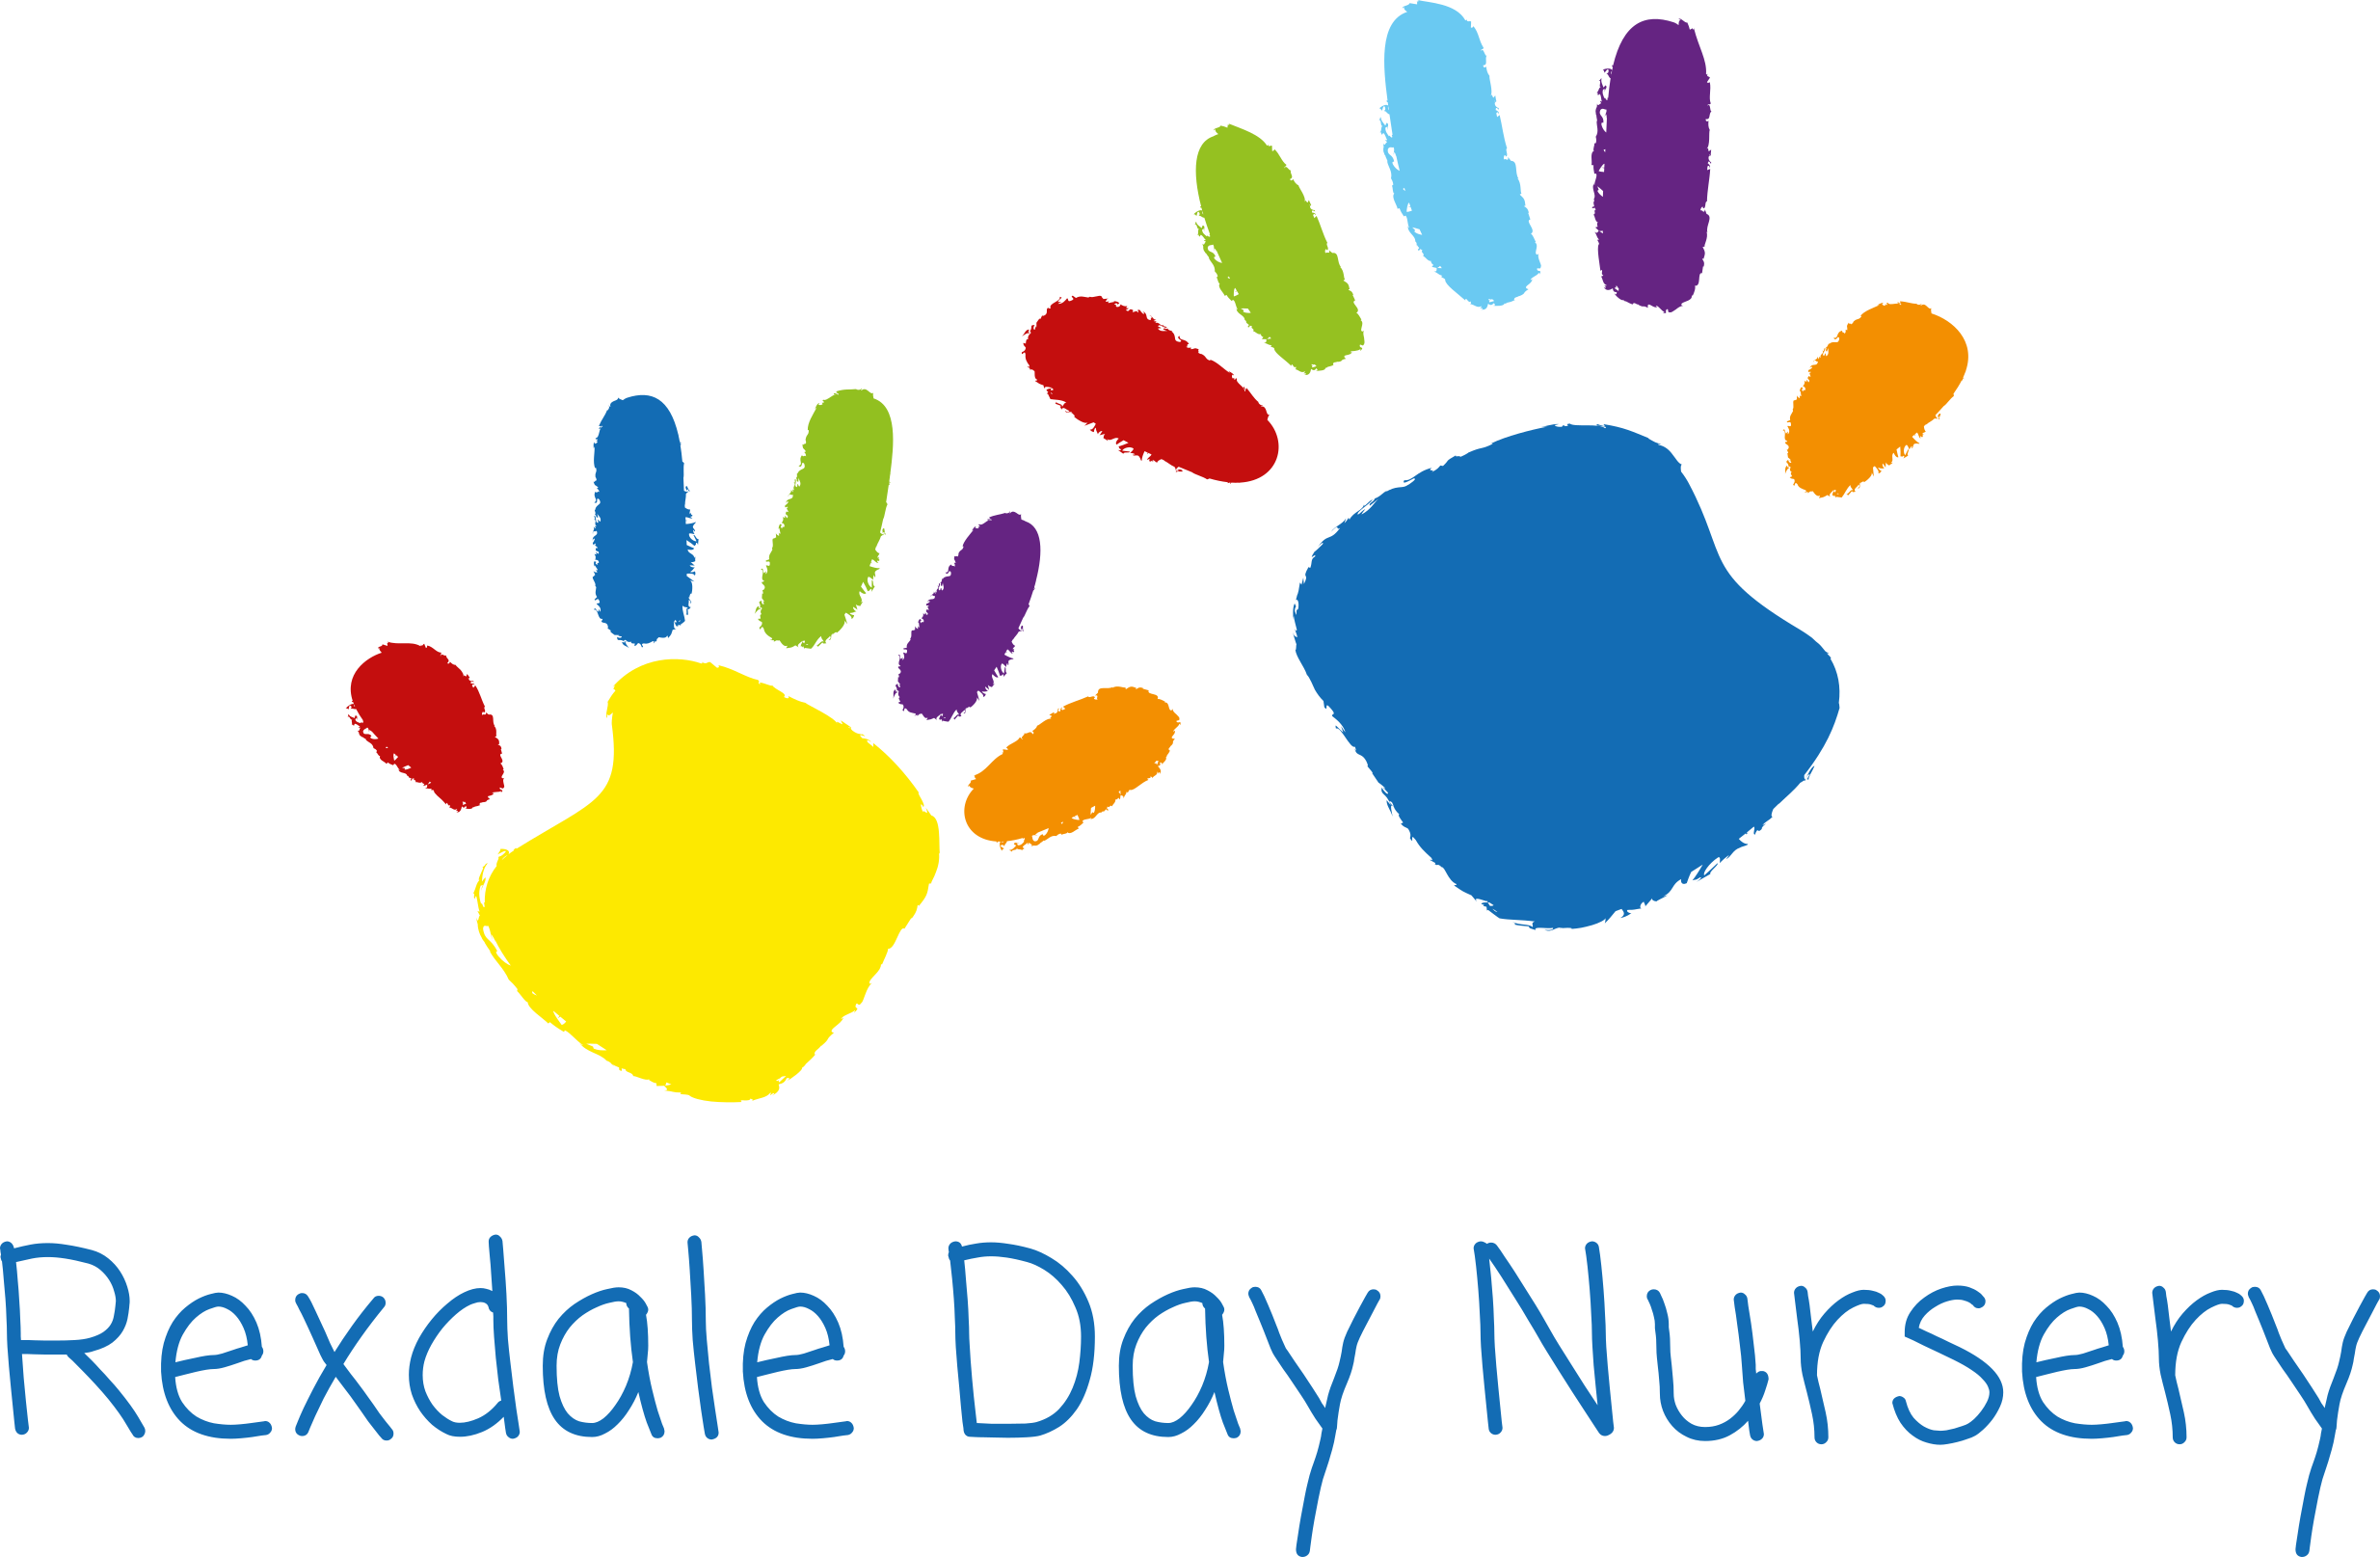 Rexdale Day Nursery